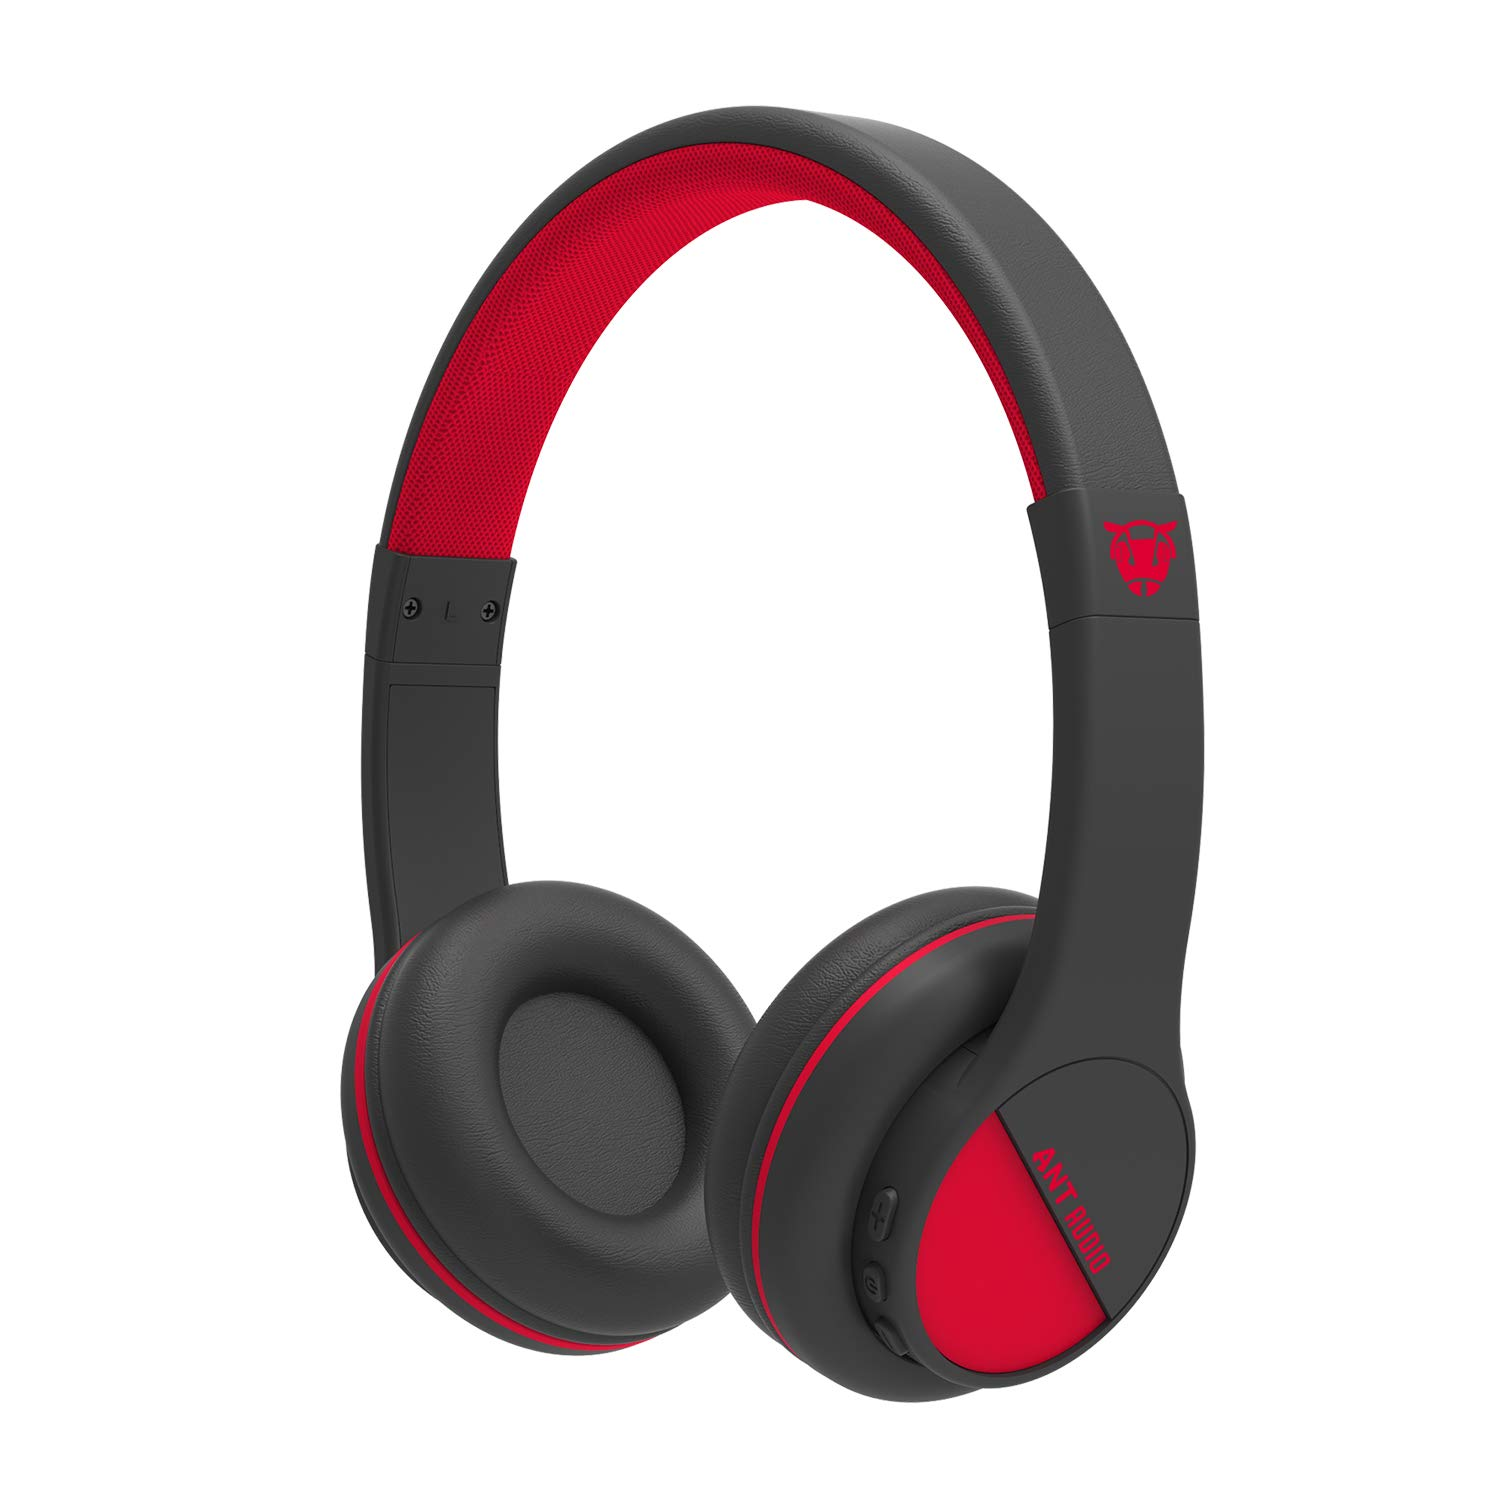 Ant Audio Treble 500 On Ear Hd Bluetooth Headphones With Mic Black And Red Buy Online In Bahamas Visit The Ant Audio Store Products In Bahamas See Prices Reviews